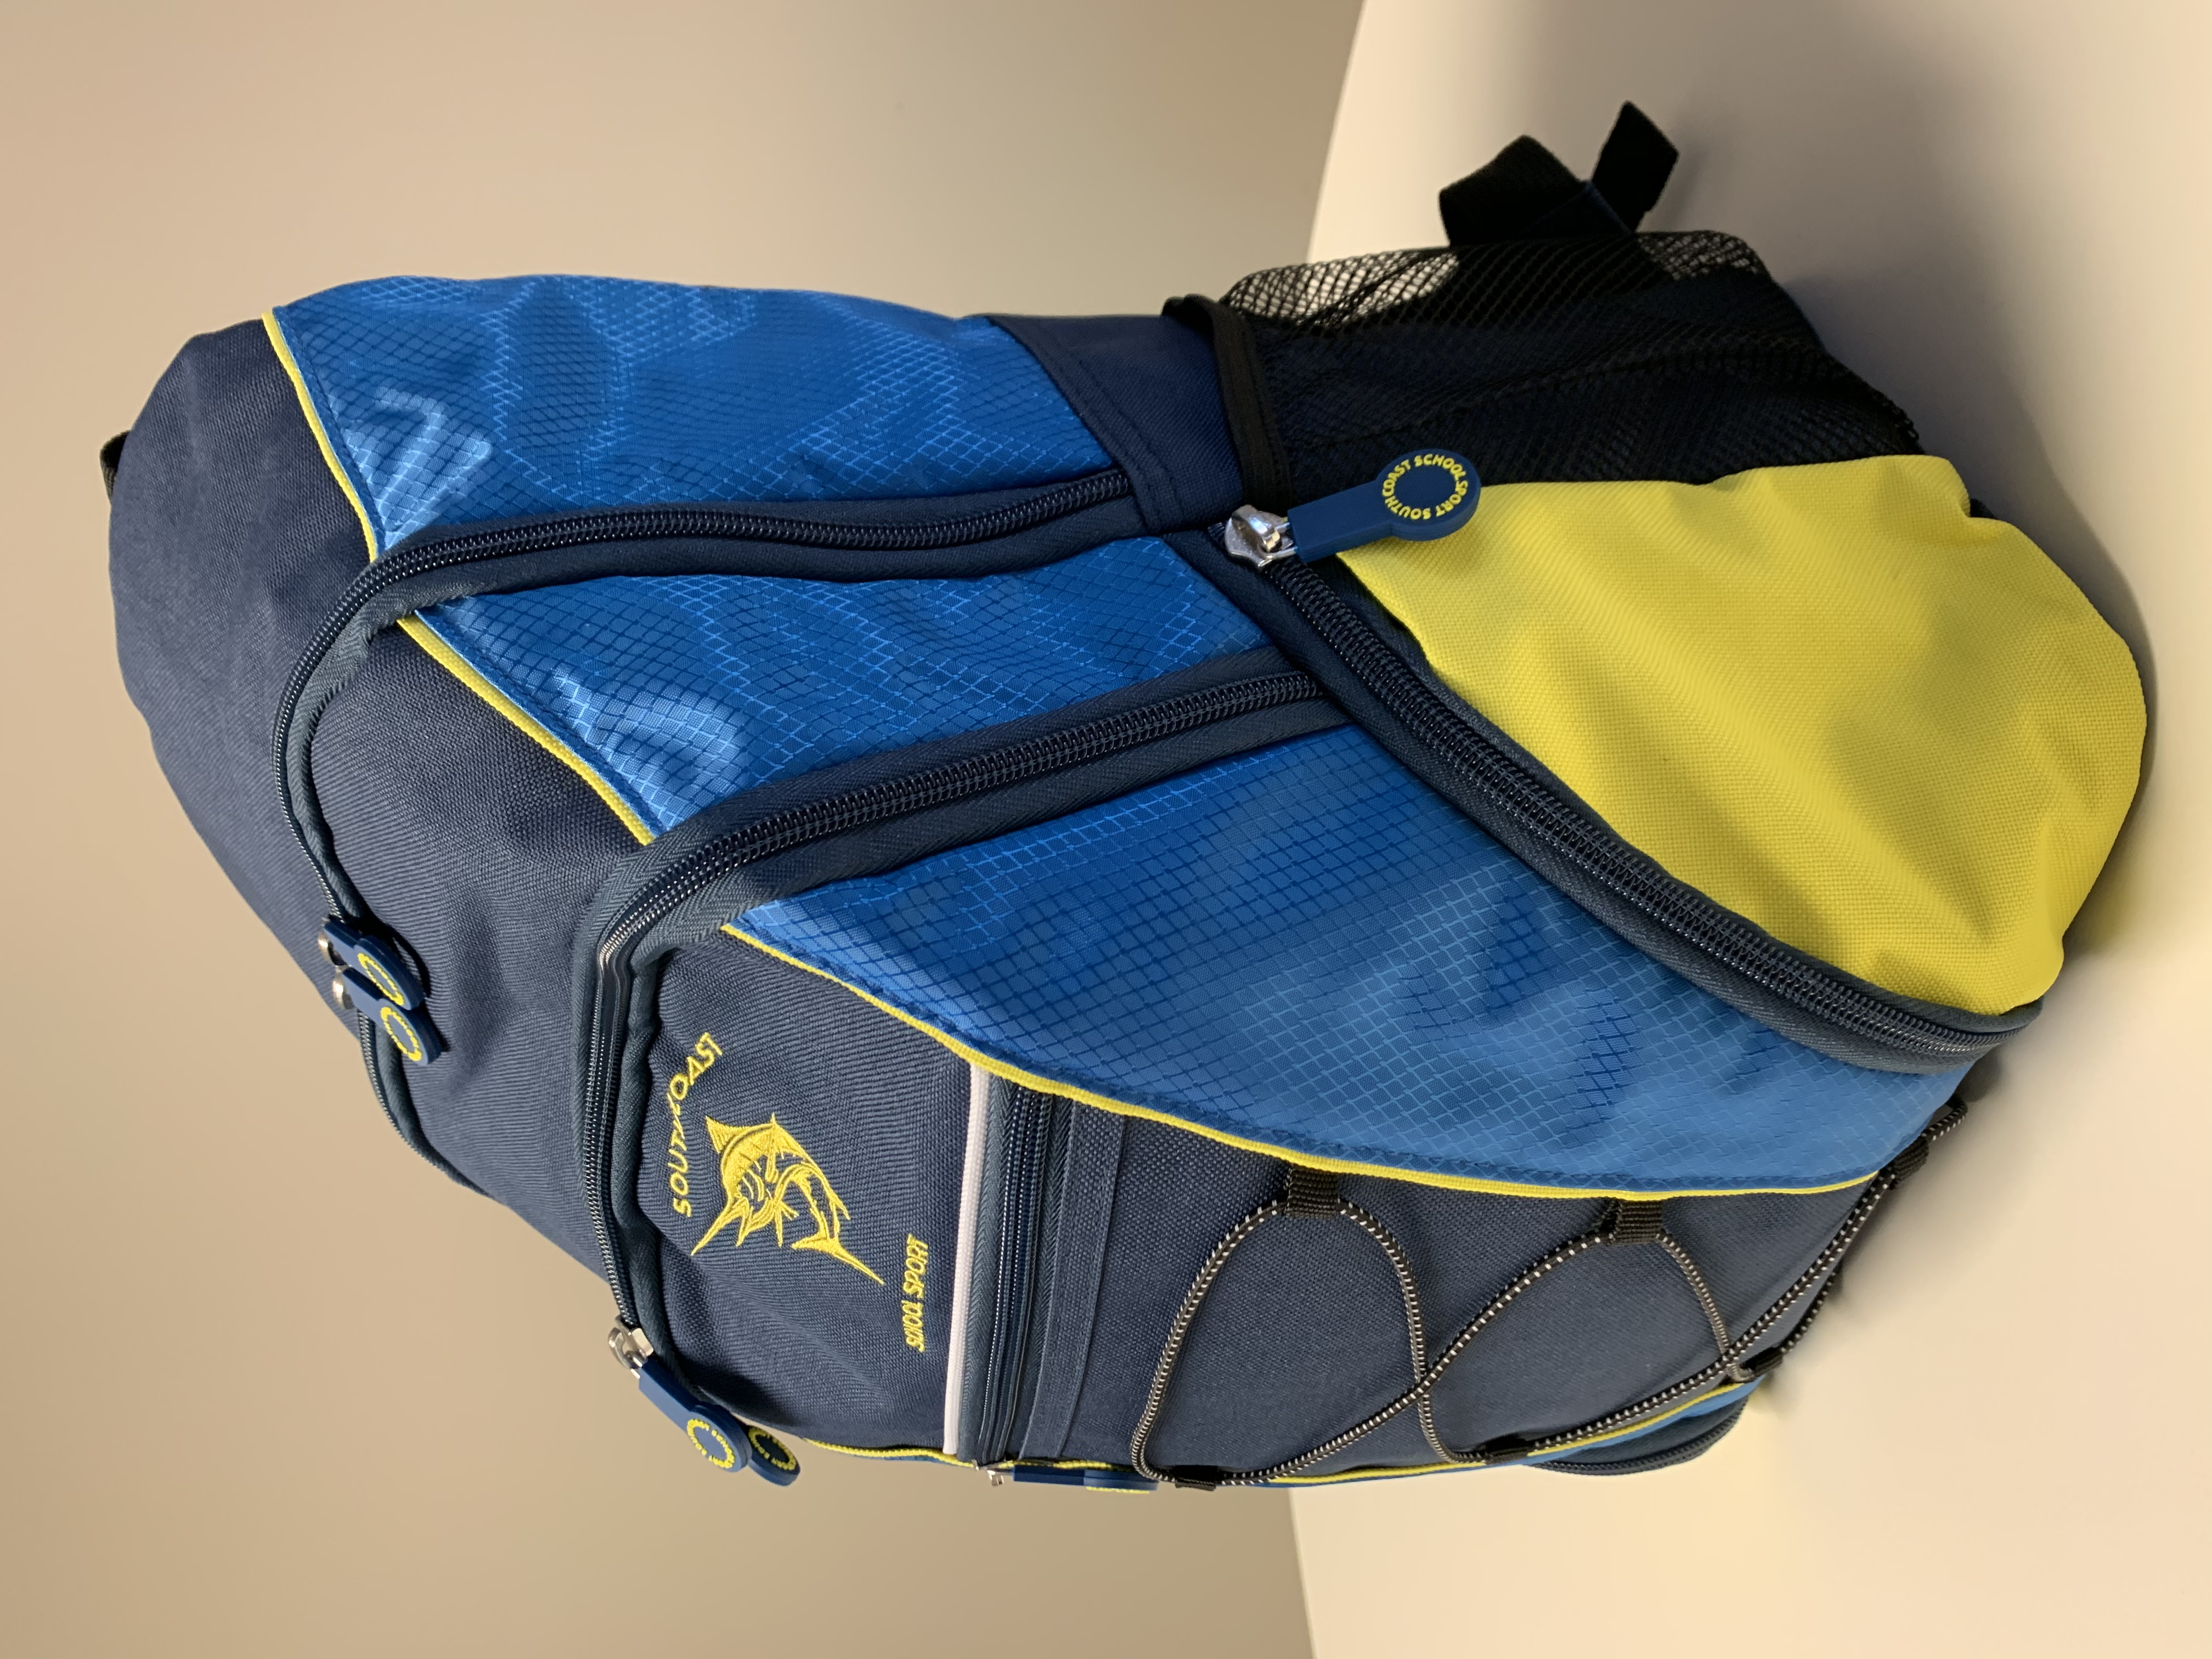 This is a photo of the south coast backpack